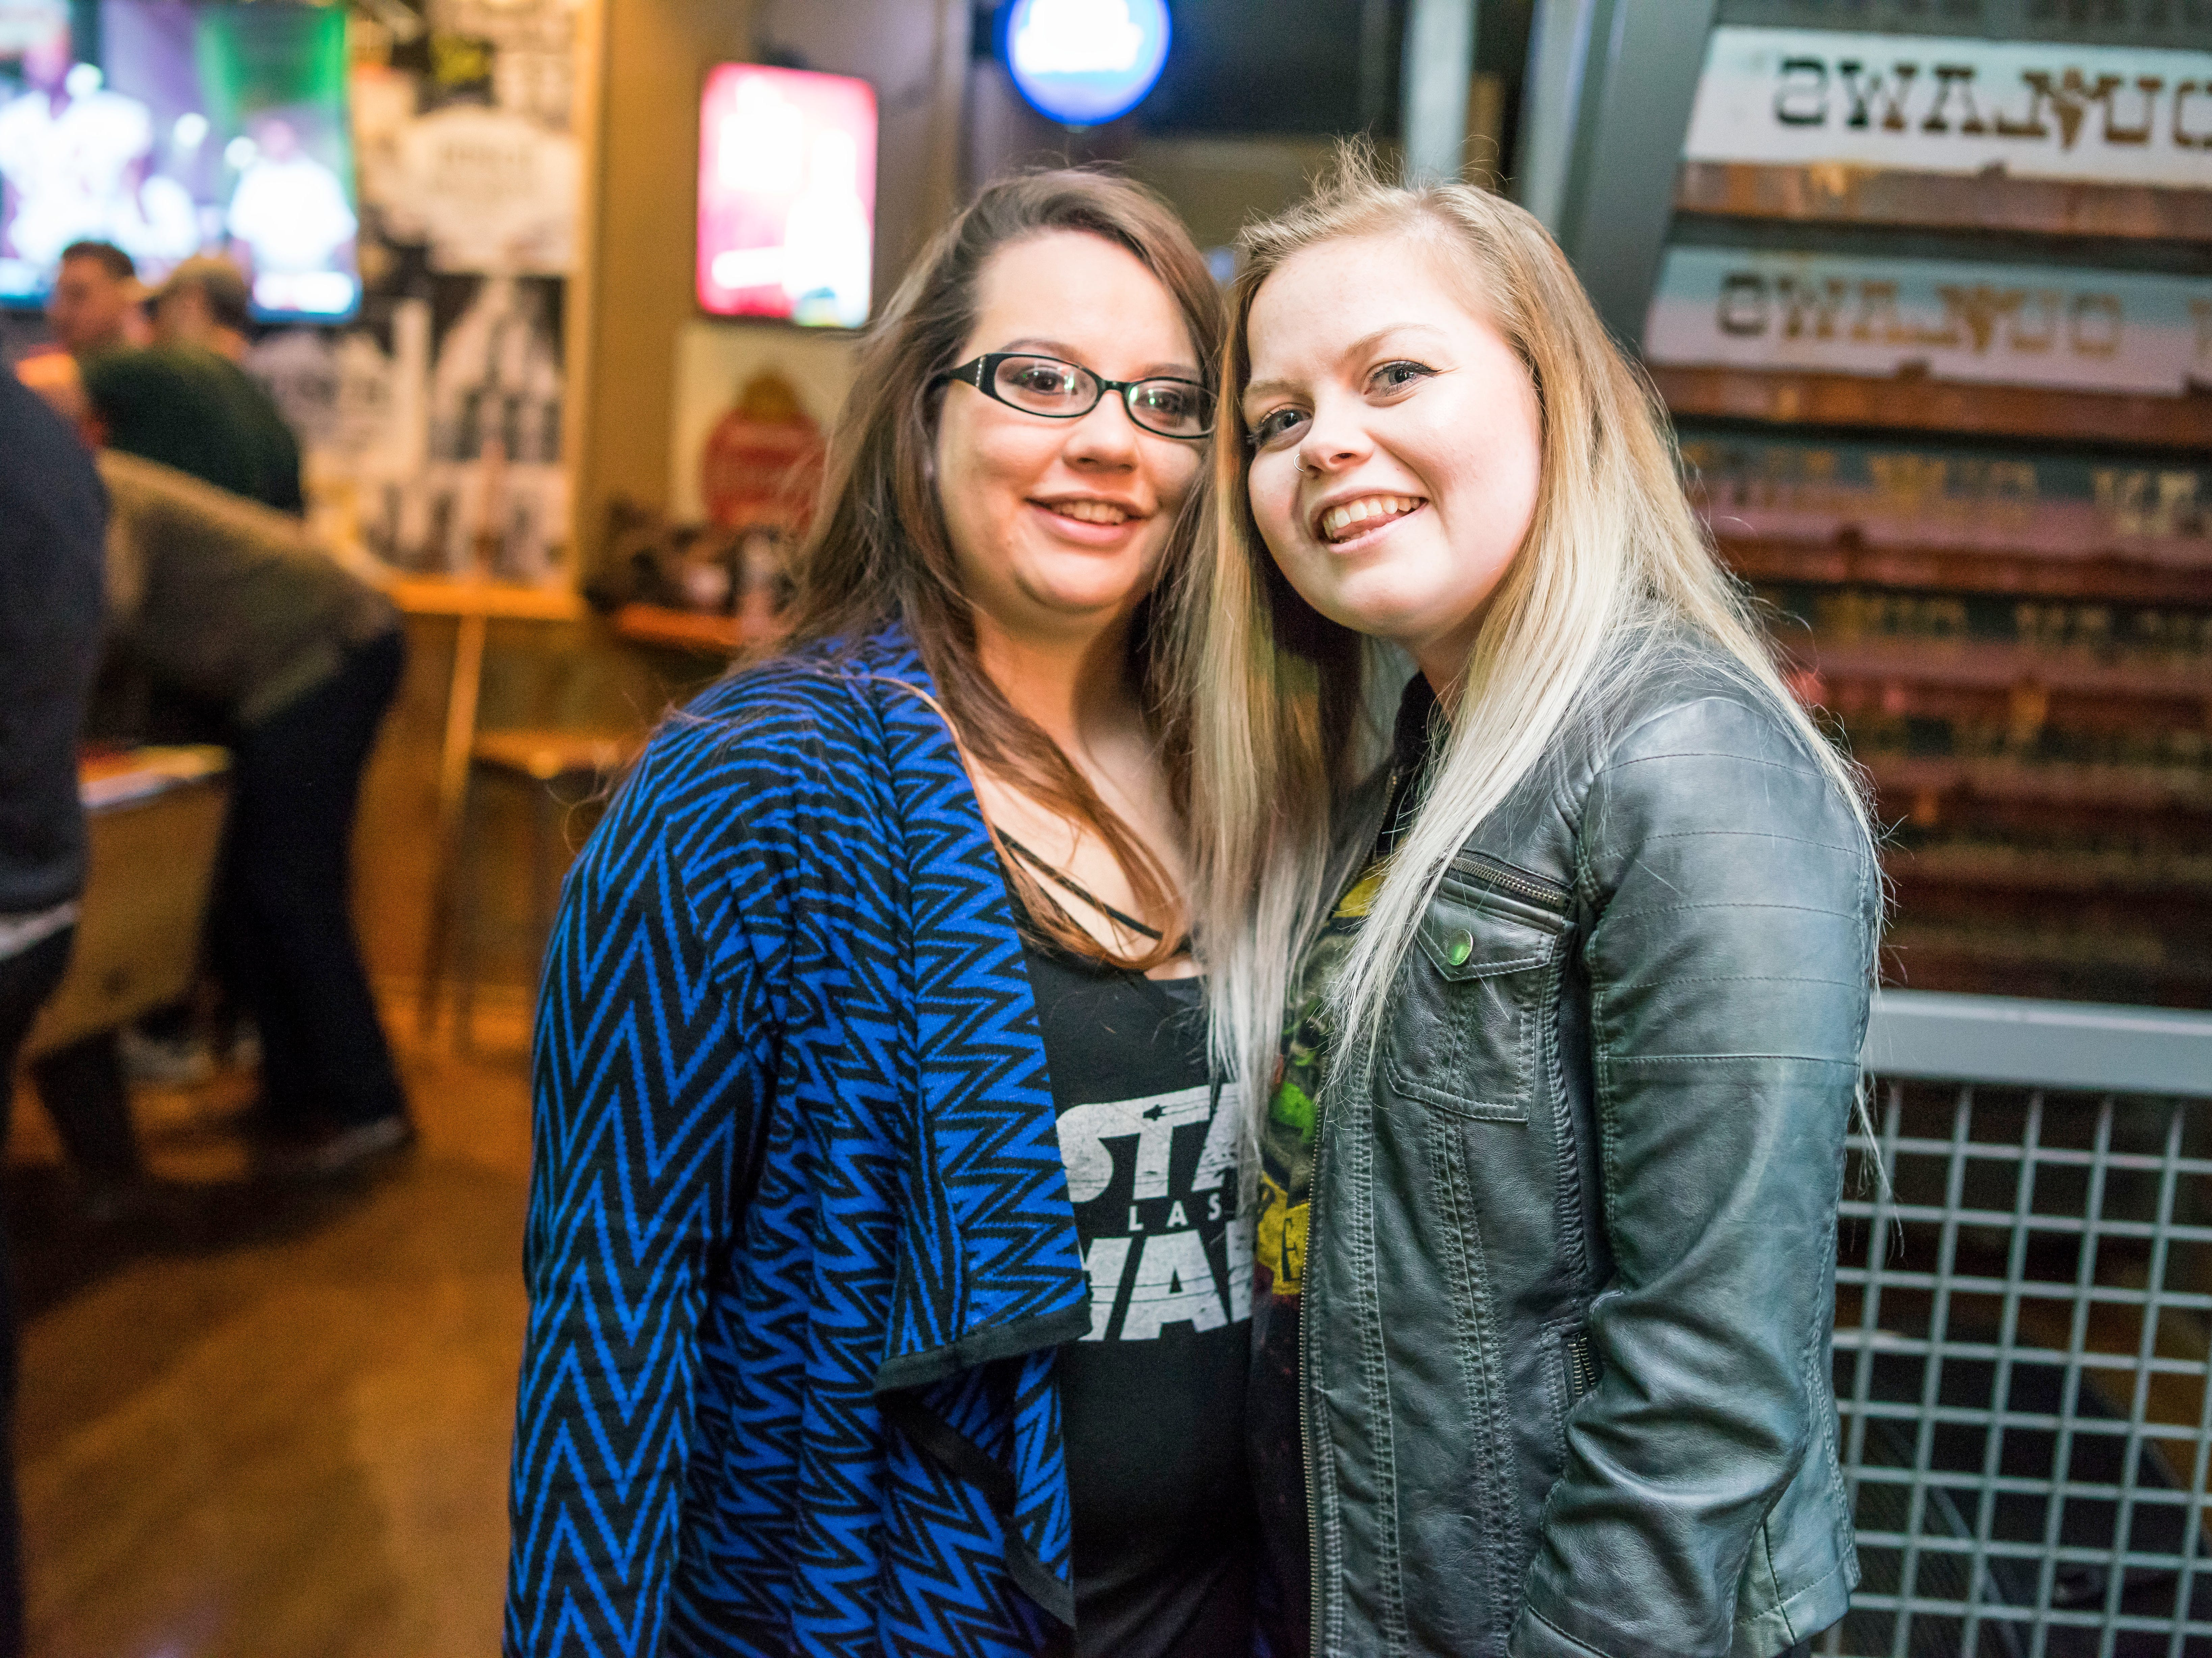 Mary Holmes, 23, and Brianna Ticcani, 22, having a fun night out, Friday, Dec. 21, at American Outlaws.